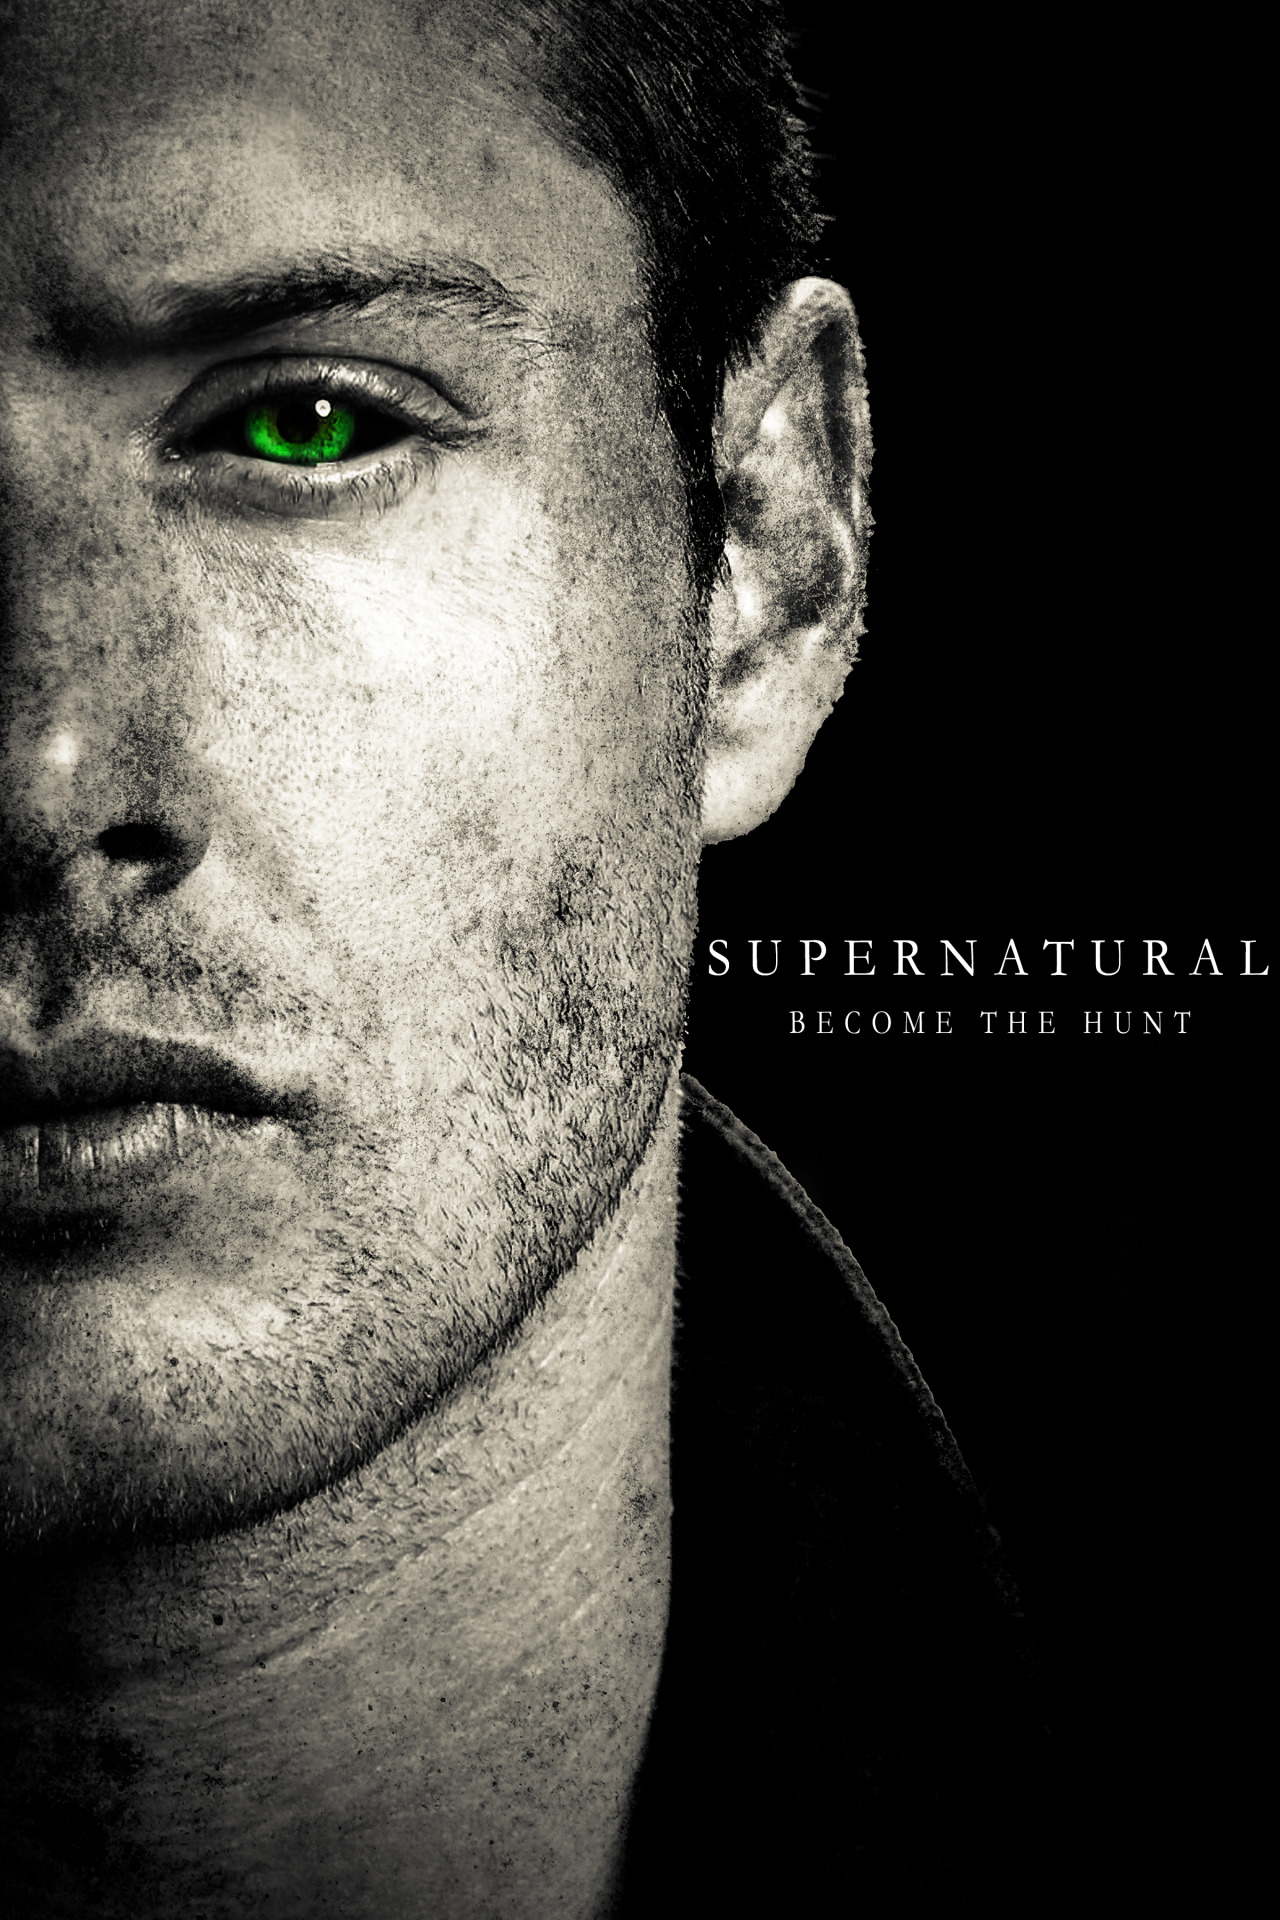 http://www.thewinchesterfamilybusiness.com/images/DiscussionPage/Season12/Episodes_6to20/httpyourlovelyalpha.jpg